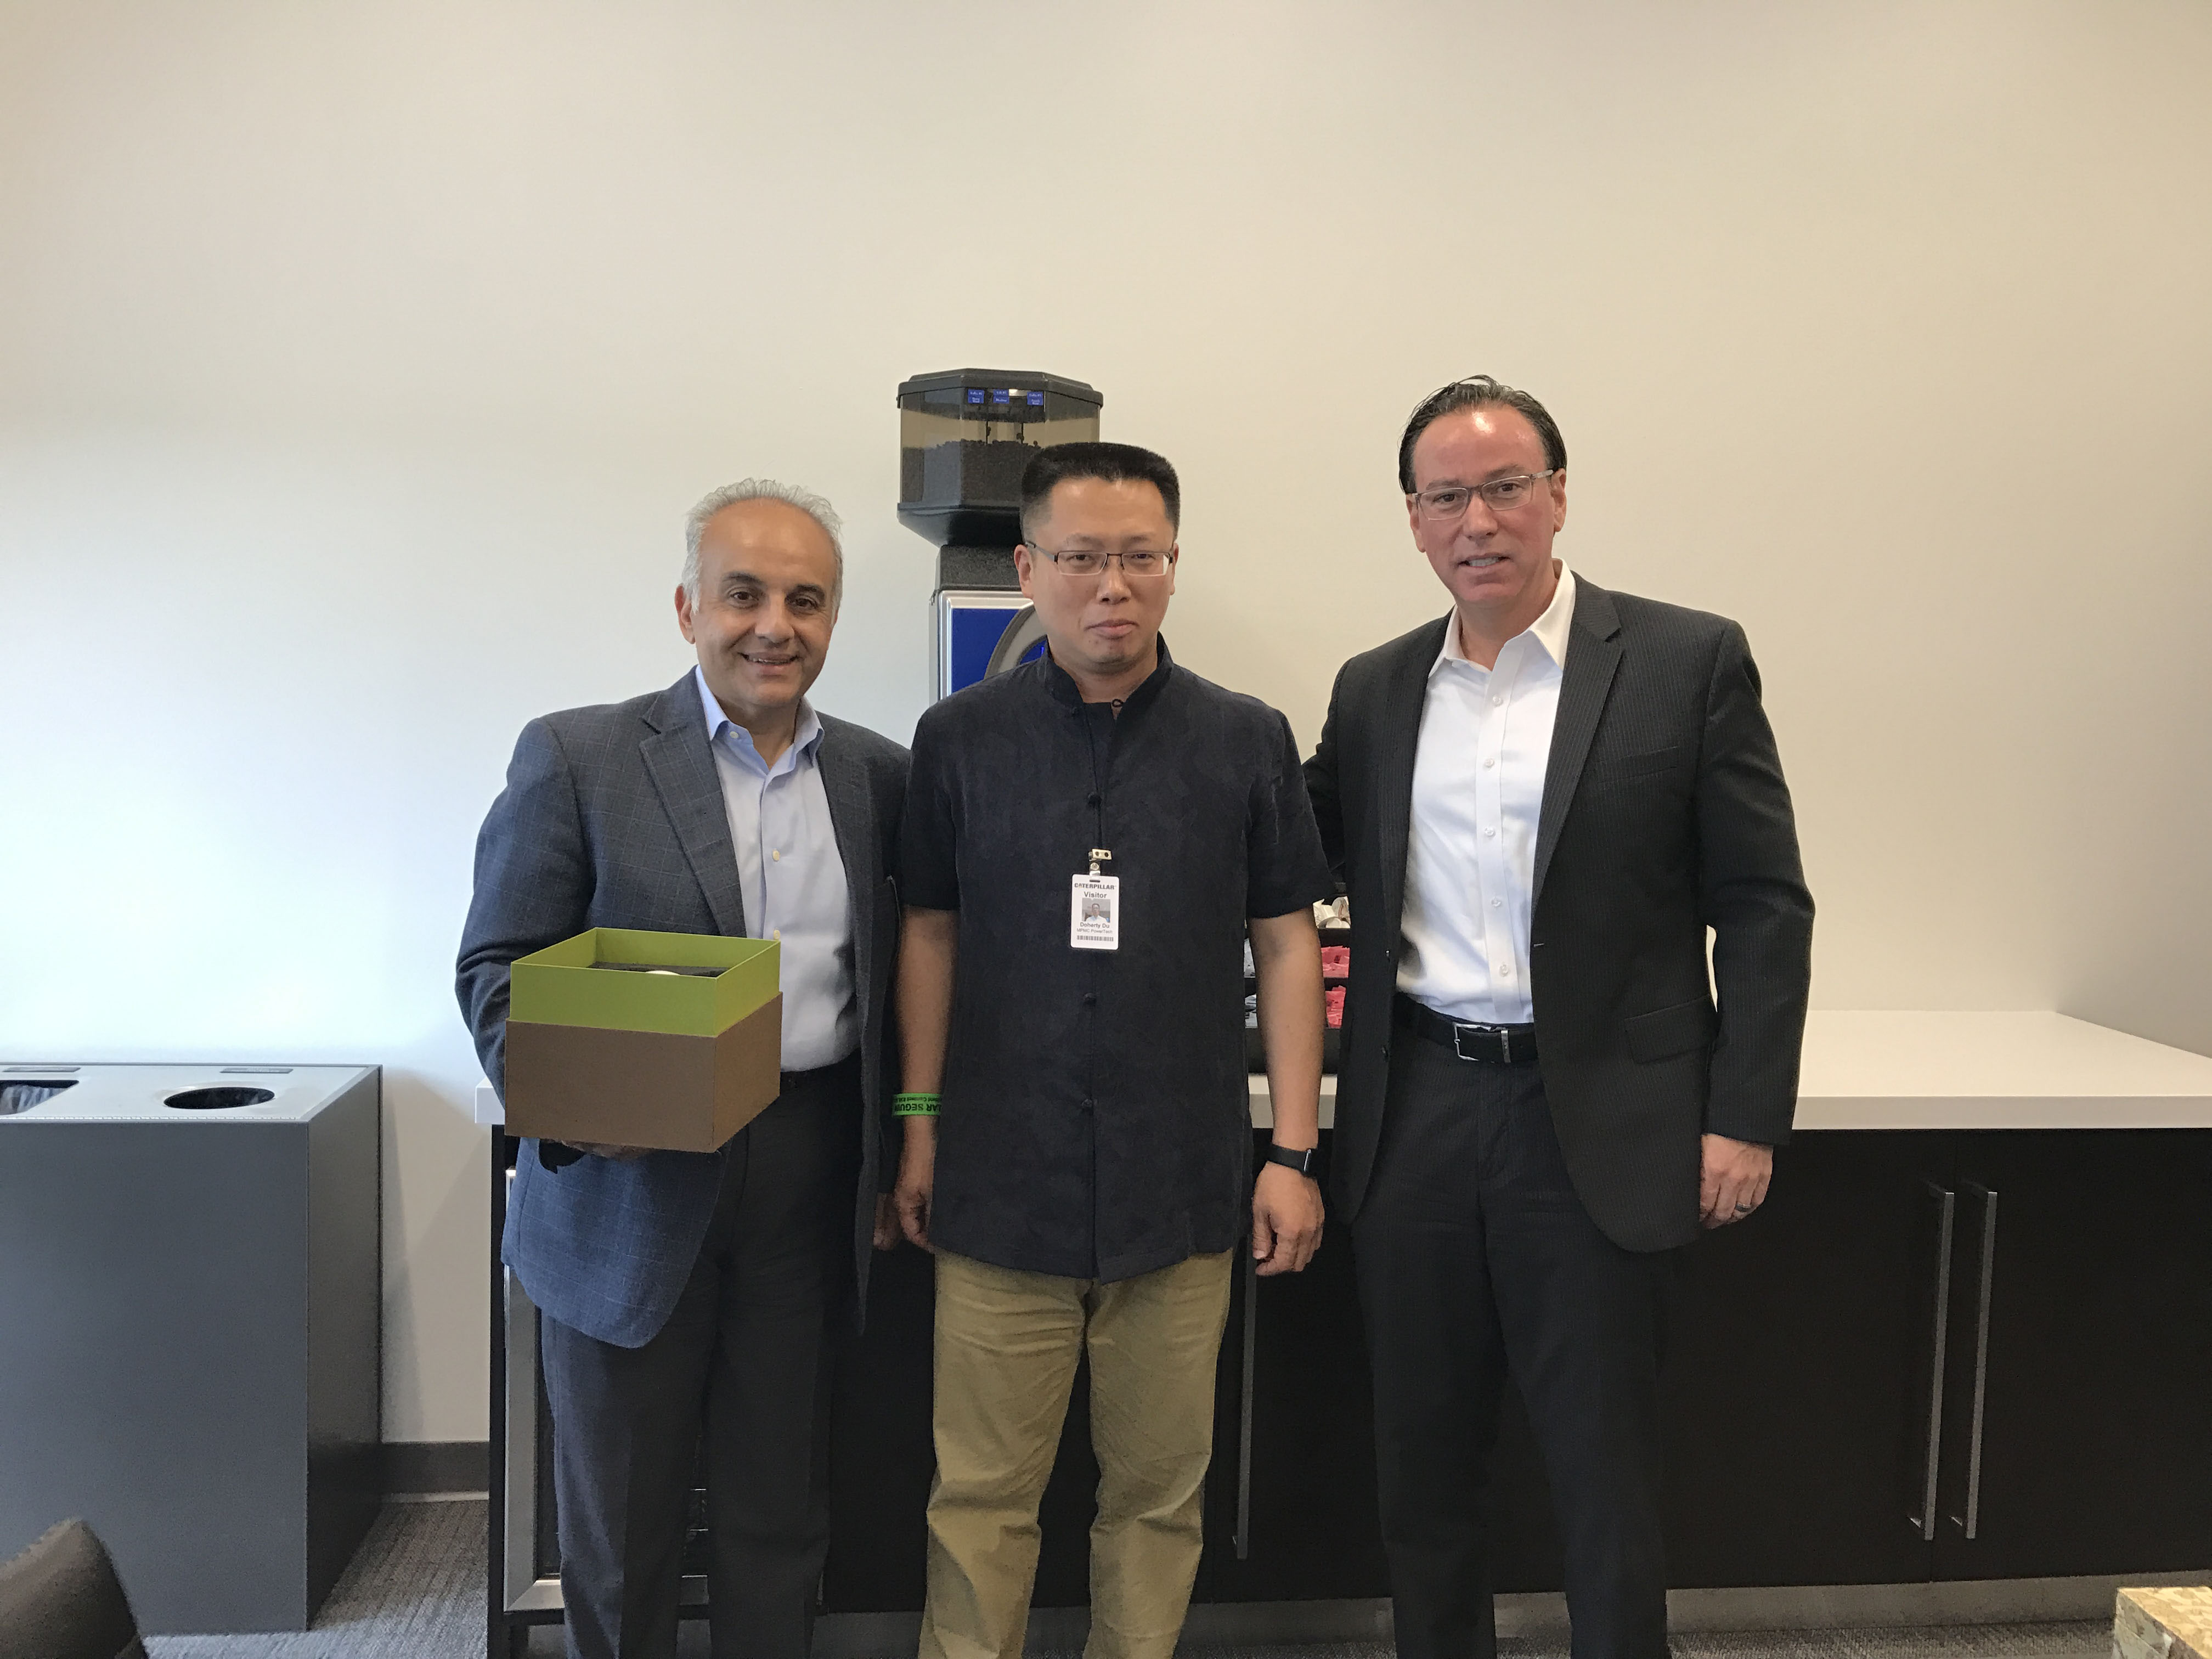 The TMT of Perkins Global, OEPresident Mr. Ramin Younessi(The left one), Vice President Mr. Chris Snodgrass(The right one) of Perkins Global and Chairman of MPMC Mr. Du Jianfeng